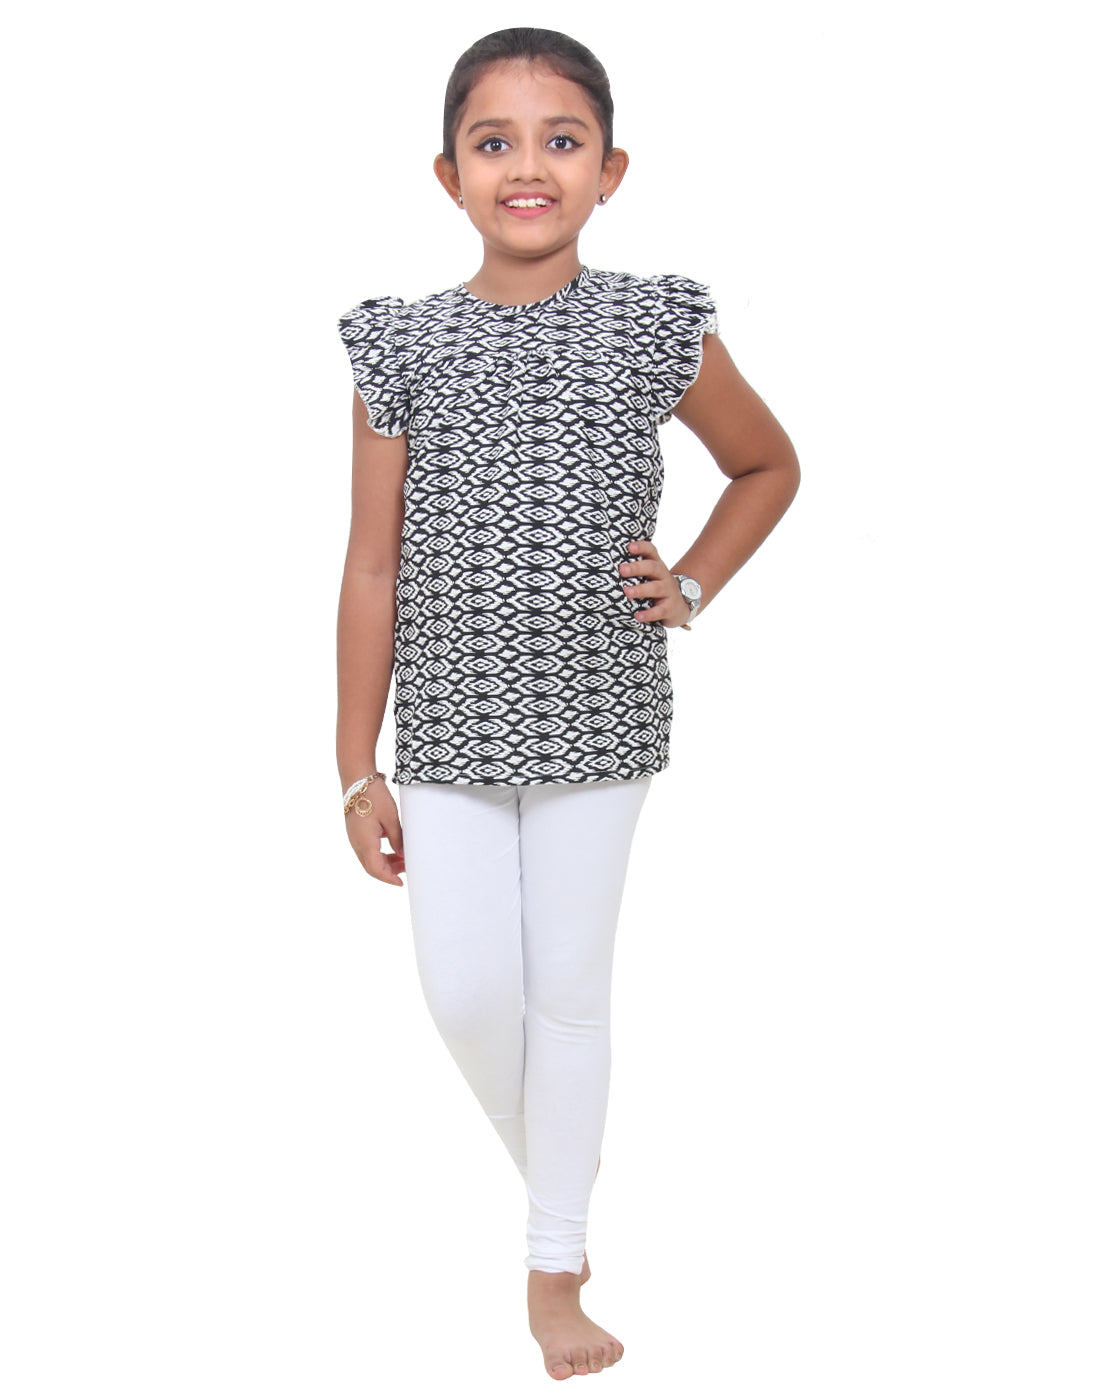 Monochrome Printed Polyester Girls Top